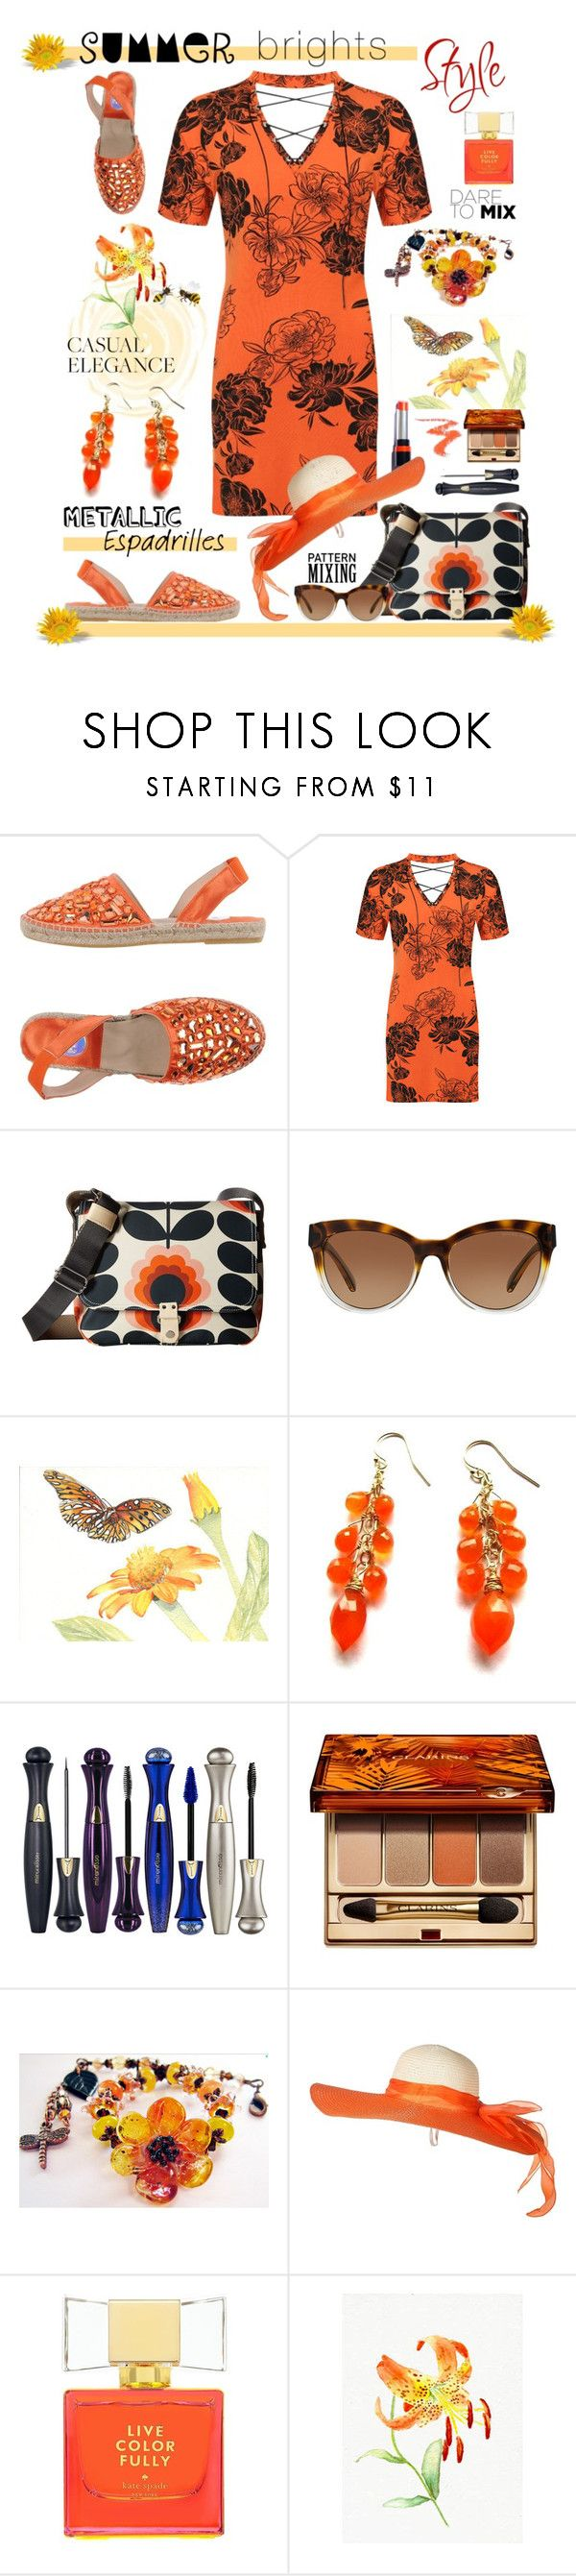 """""""Step Into Summer: Metallic Espadrilles"""" by belladonnasjoy ❤ liked on Polyvore featuring RAS, WearAll, Orla Kiely, Michael Kors, Mirenésse, Clarins and Kate Spade"""